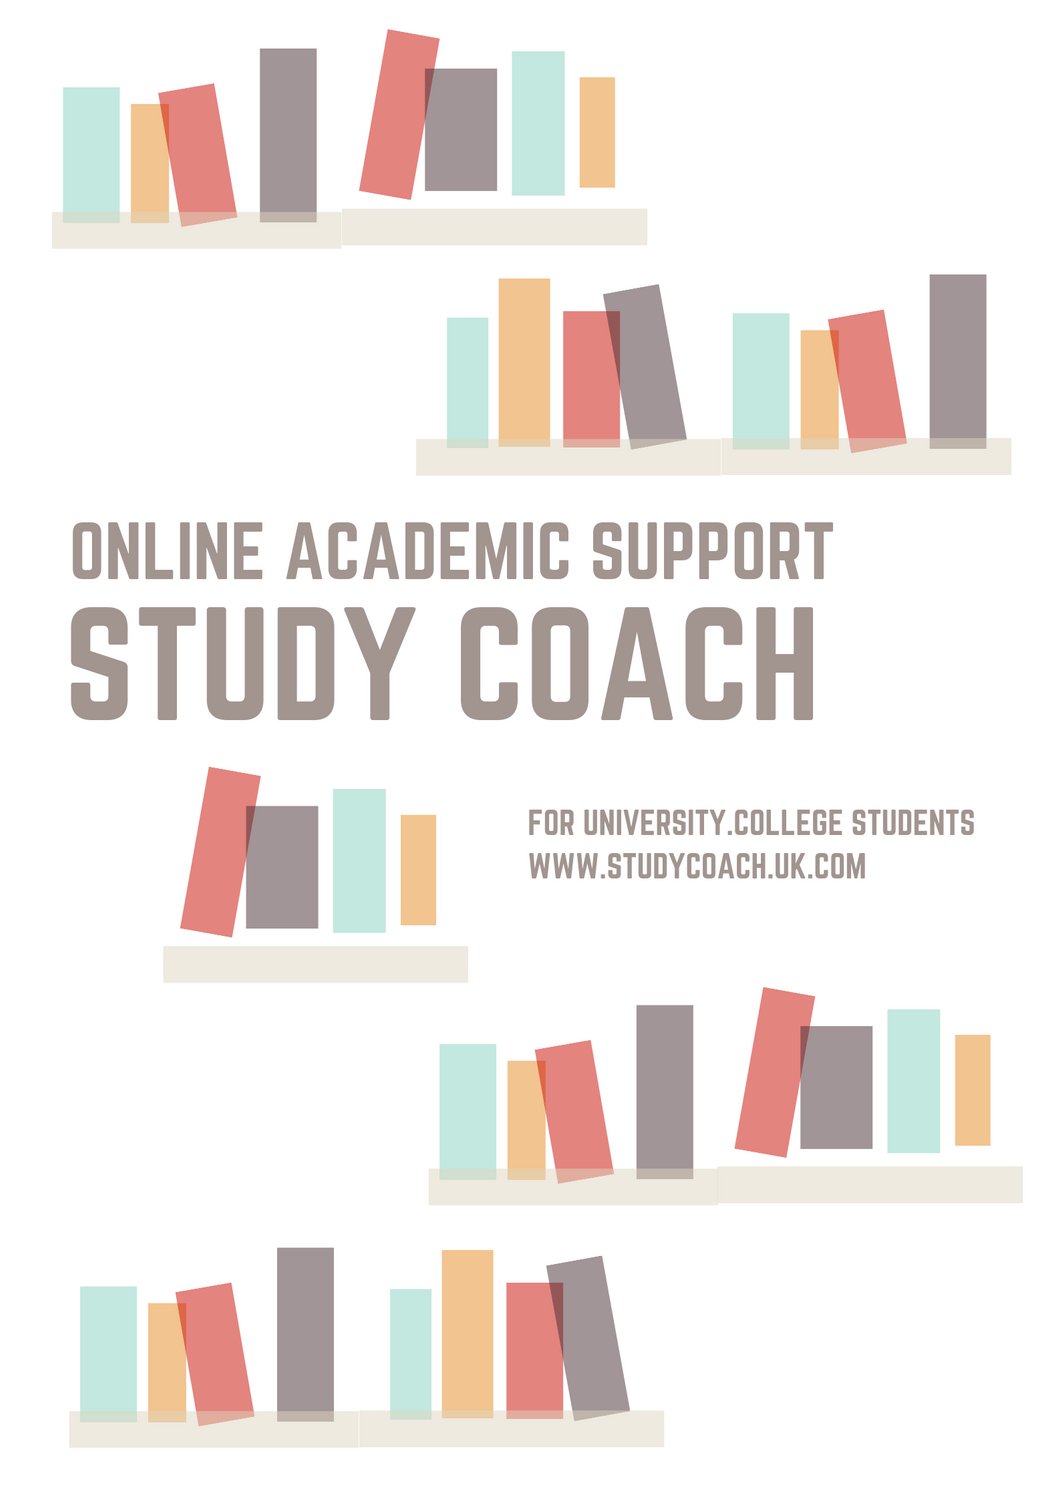 Study Coach Online Academic Support Service Providing